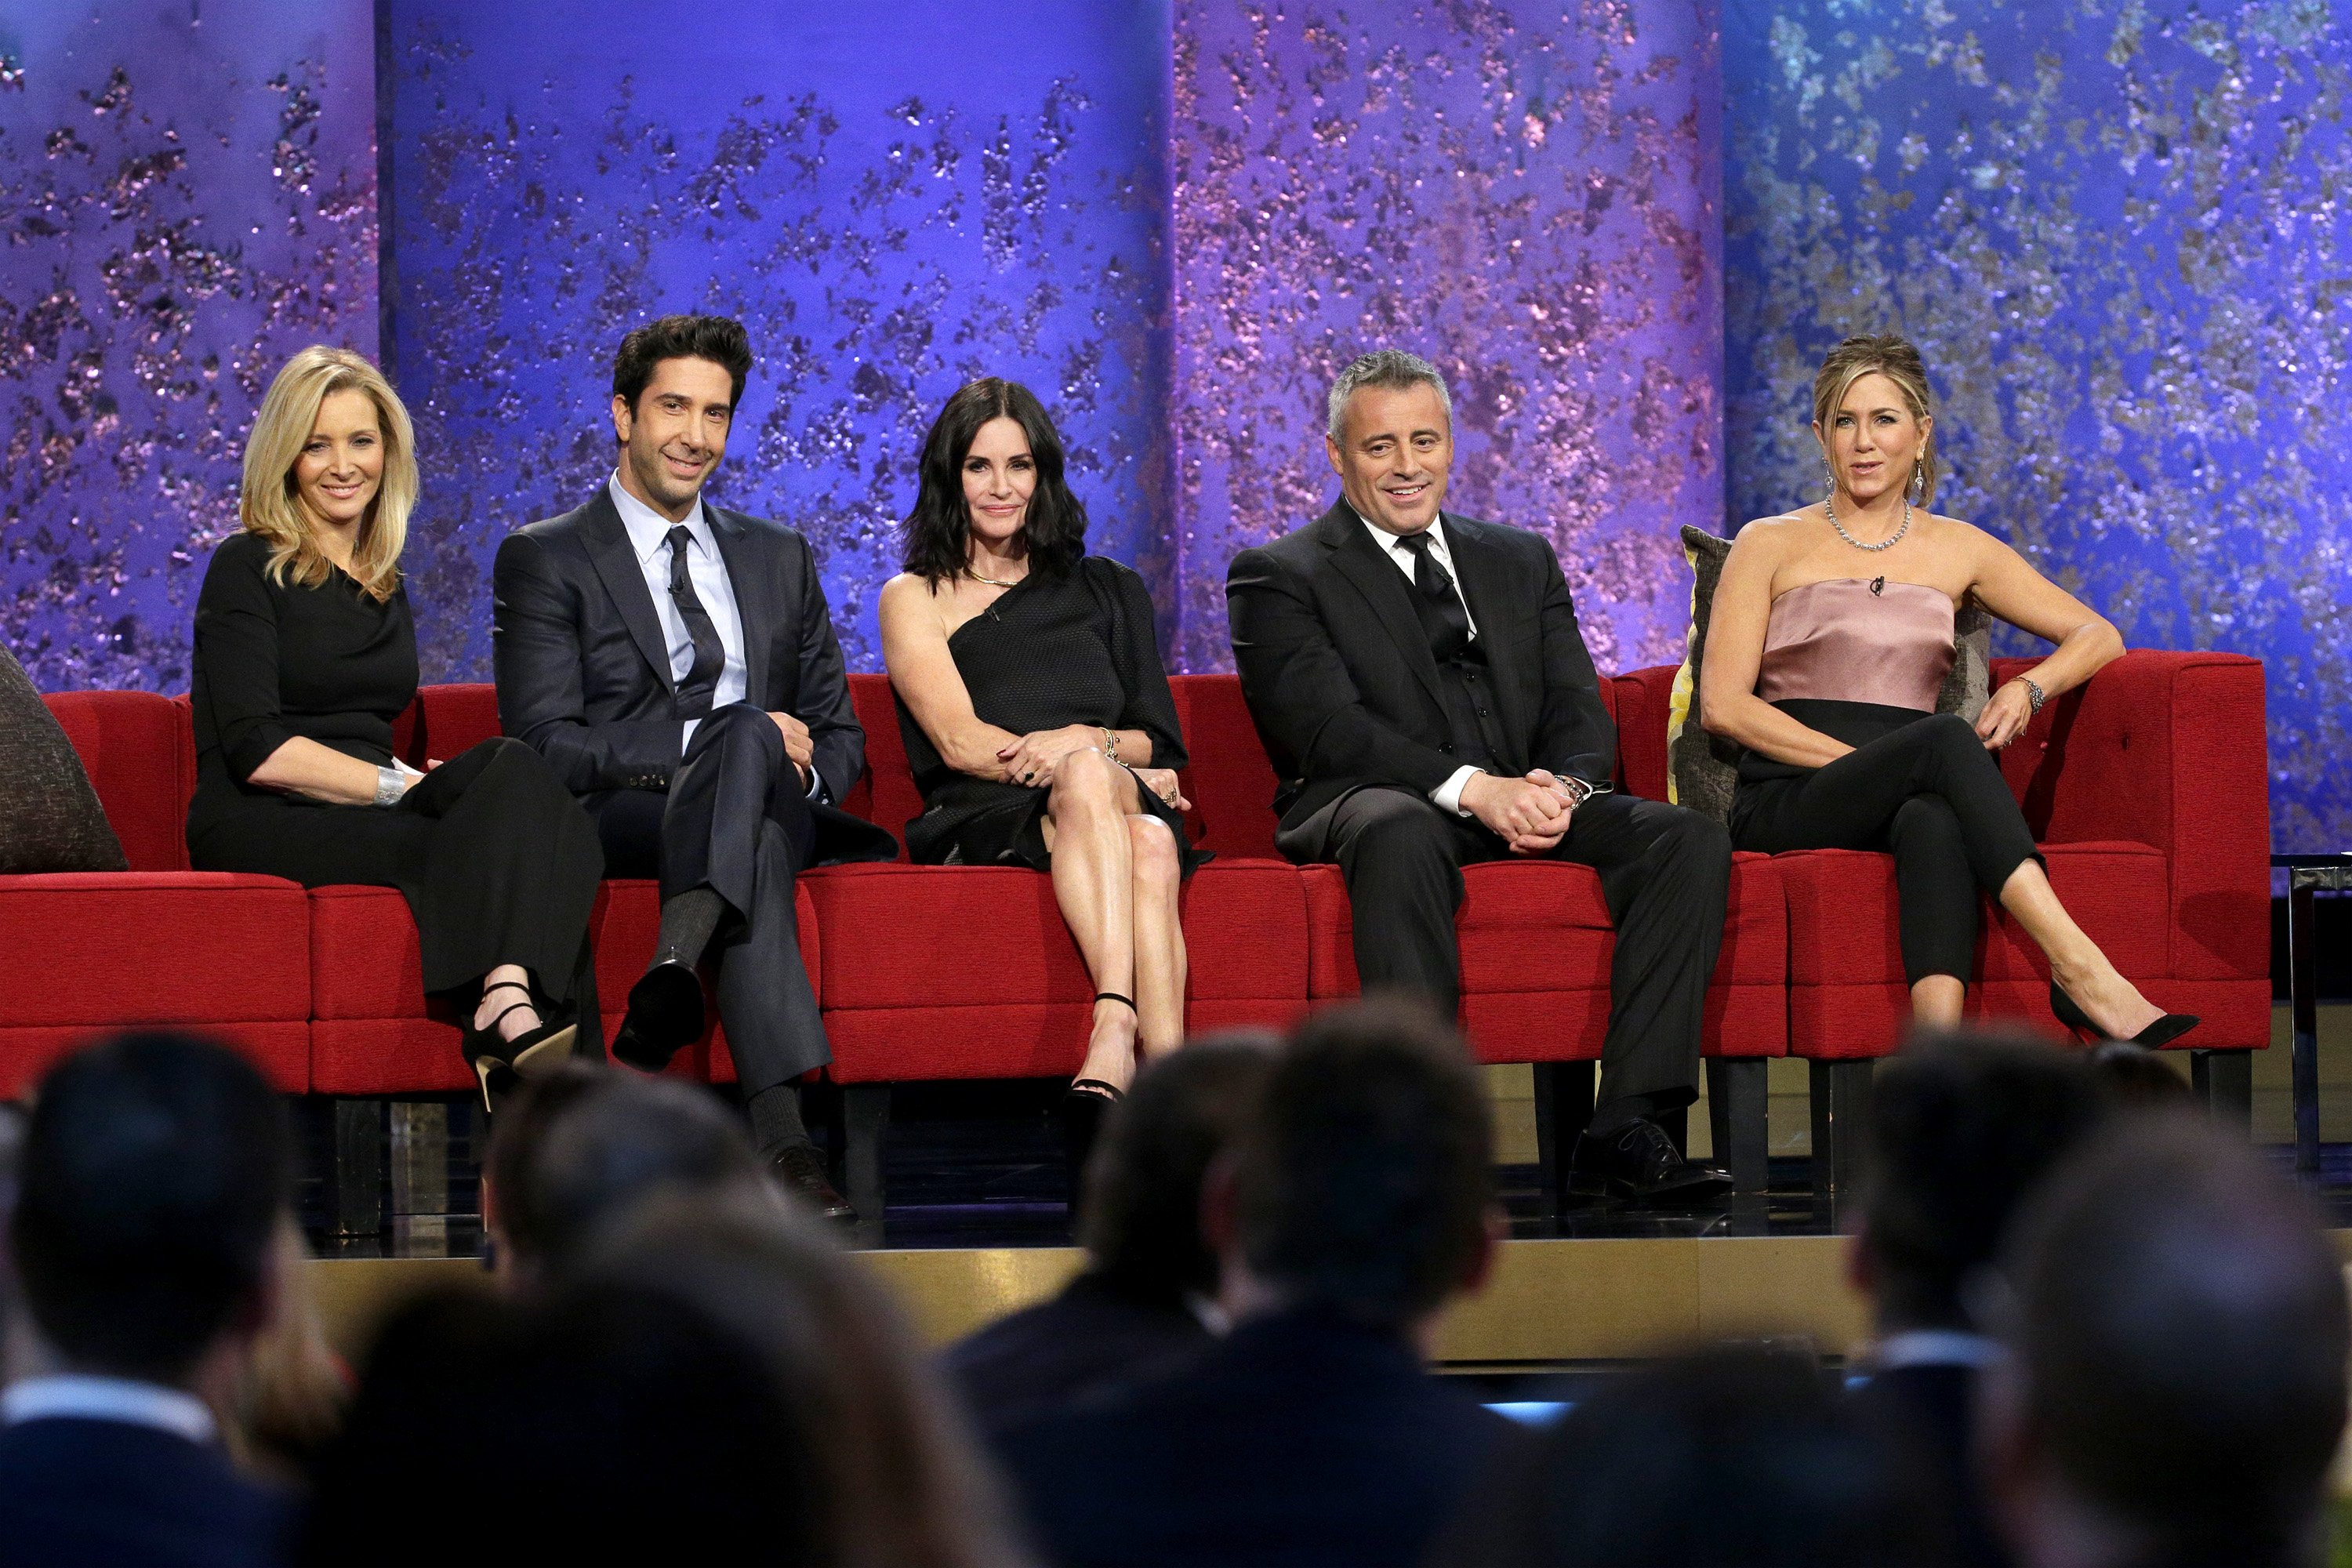 AN ALL-STAR TRIBUTE TO JAMES BURROWS -- Pictured: (l-r) Lisa Kudrow, David Schwimmer, Courteneey Cox, Matt LeBlanc, Jennifer Aniston.   Source: Getty Images